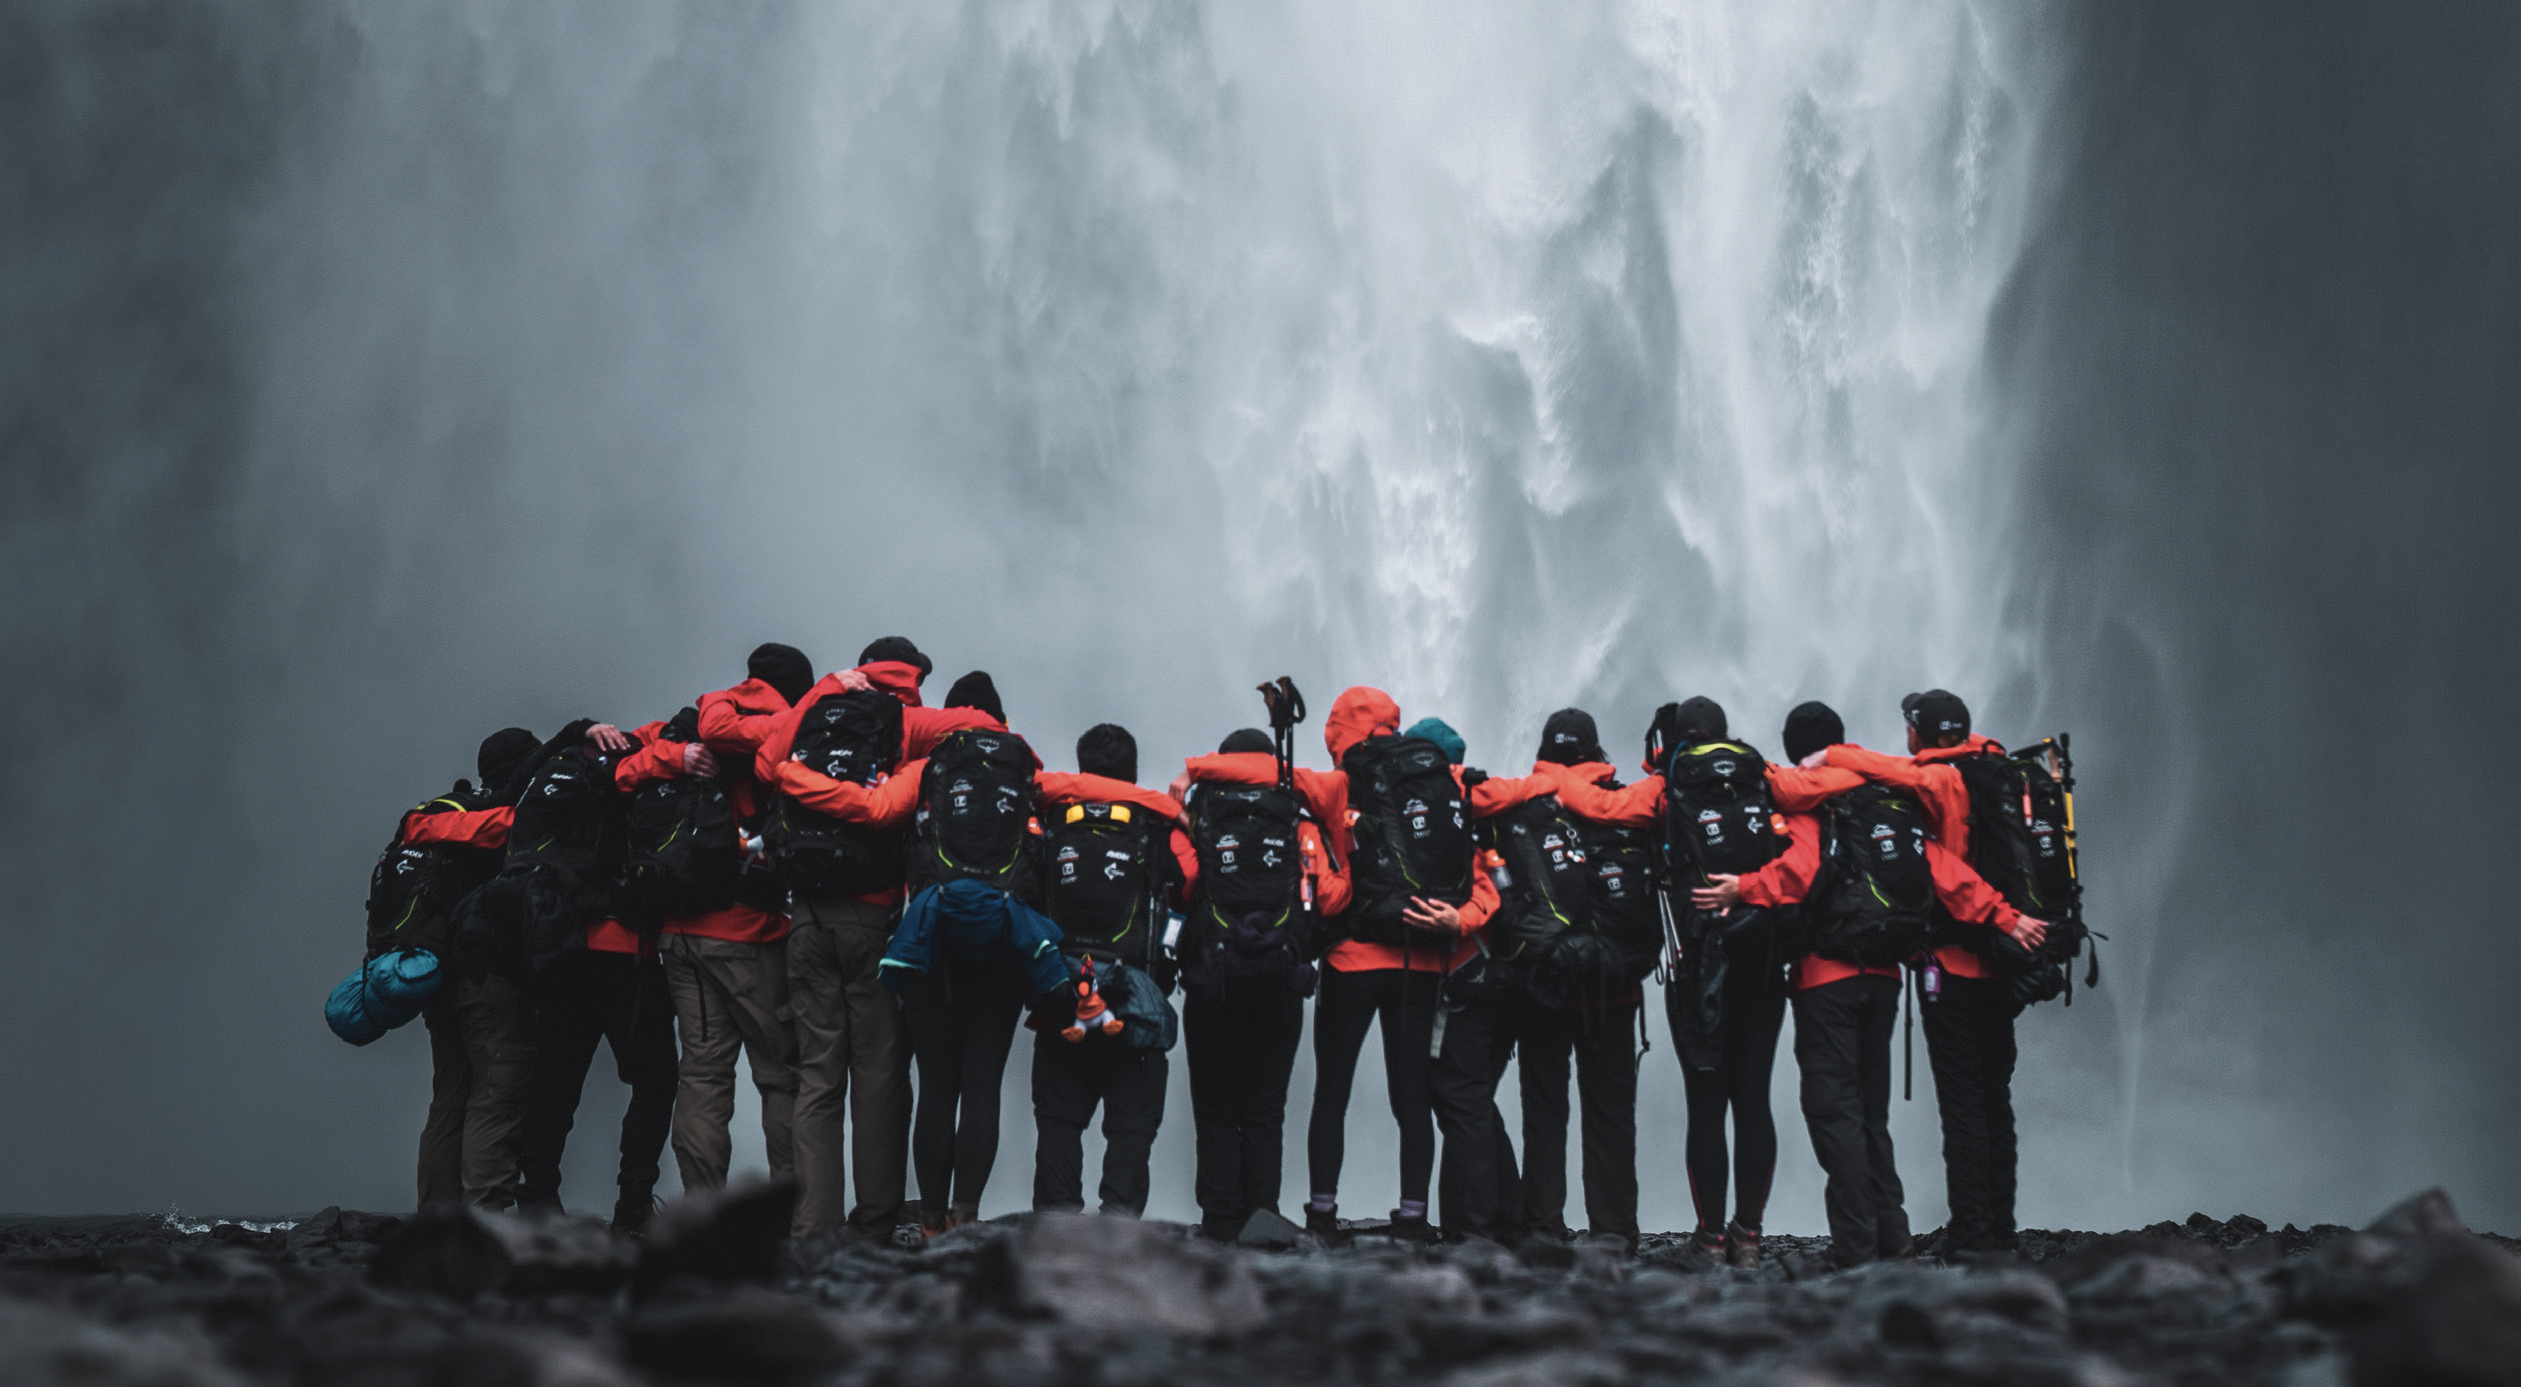 The team trekked to Skogafoss Waterfall on day four of the adventure. - PHOTO BY UNCAGE THE SOUL PRODUCTIONS